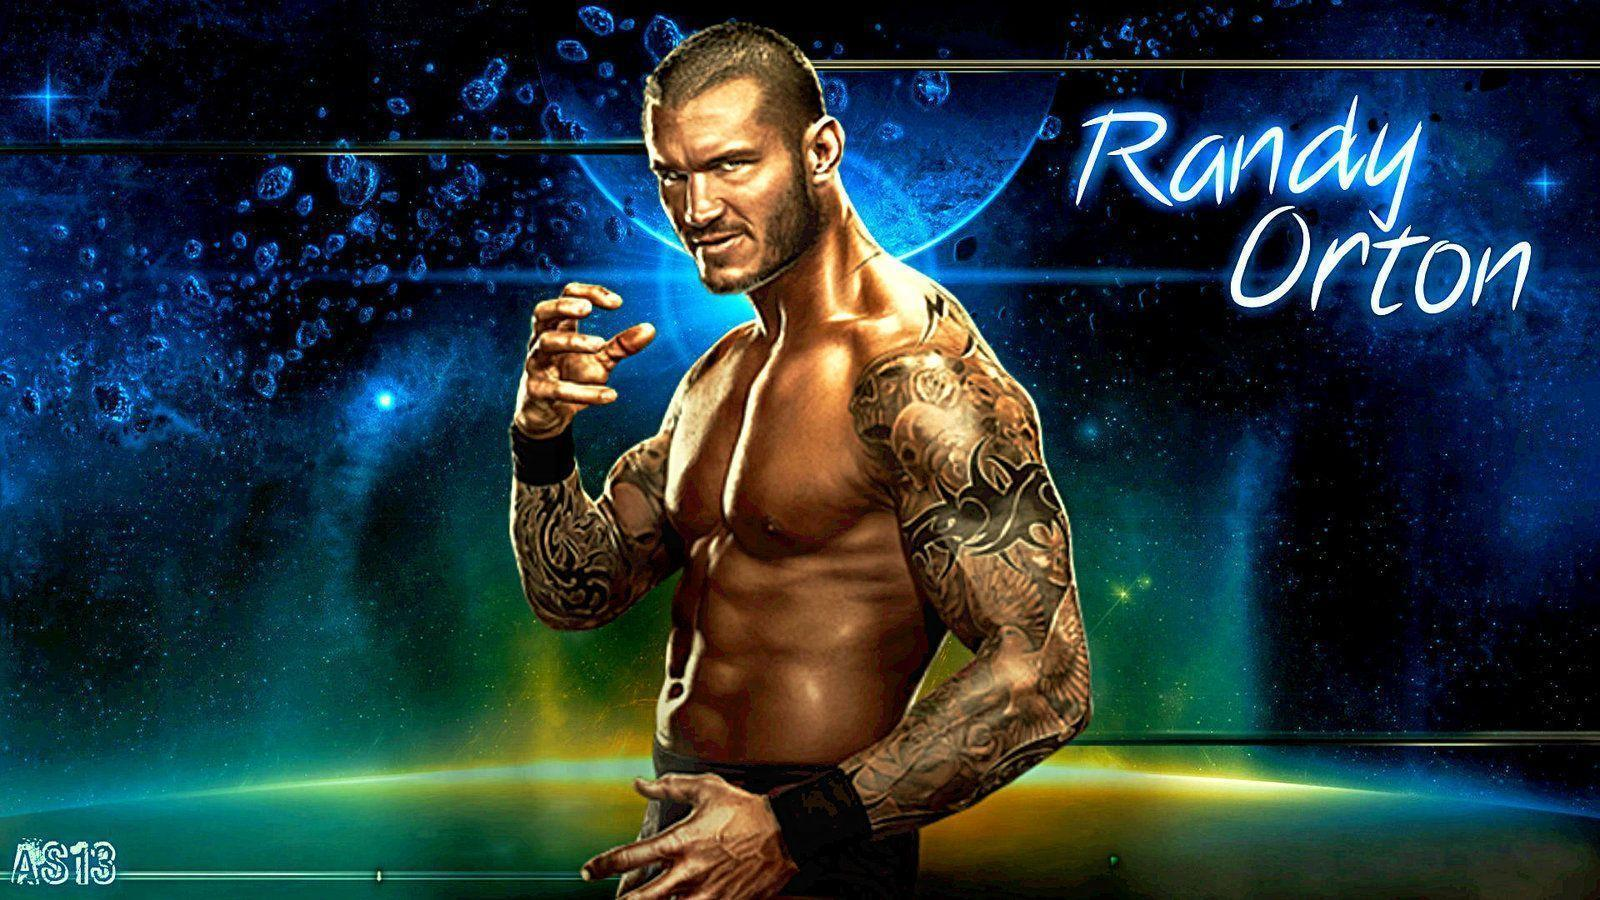 Randy Orton Hd Wallpapers | Wallpapers Top 10